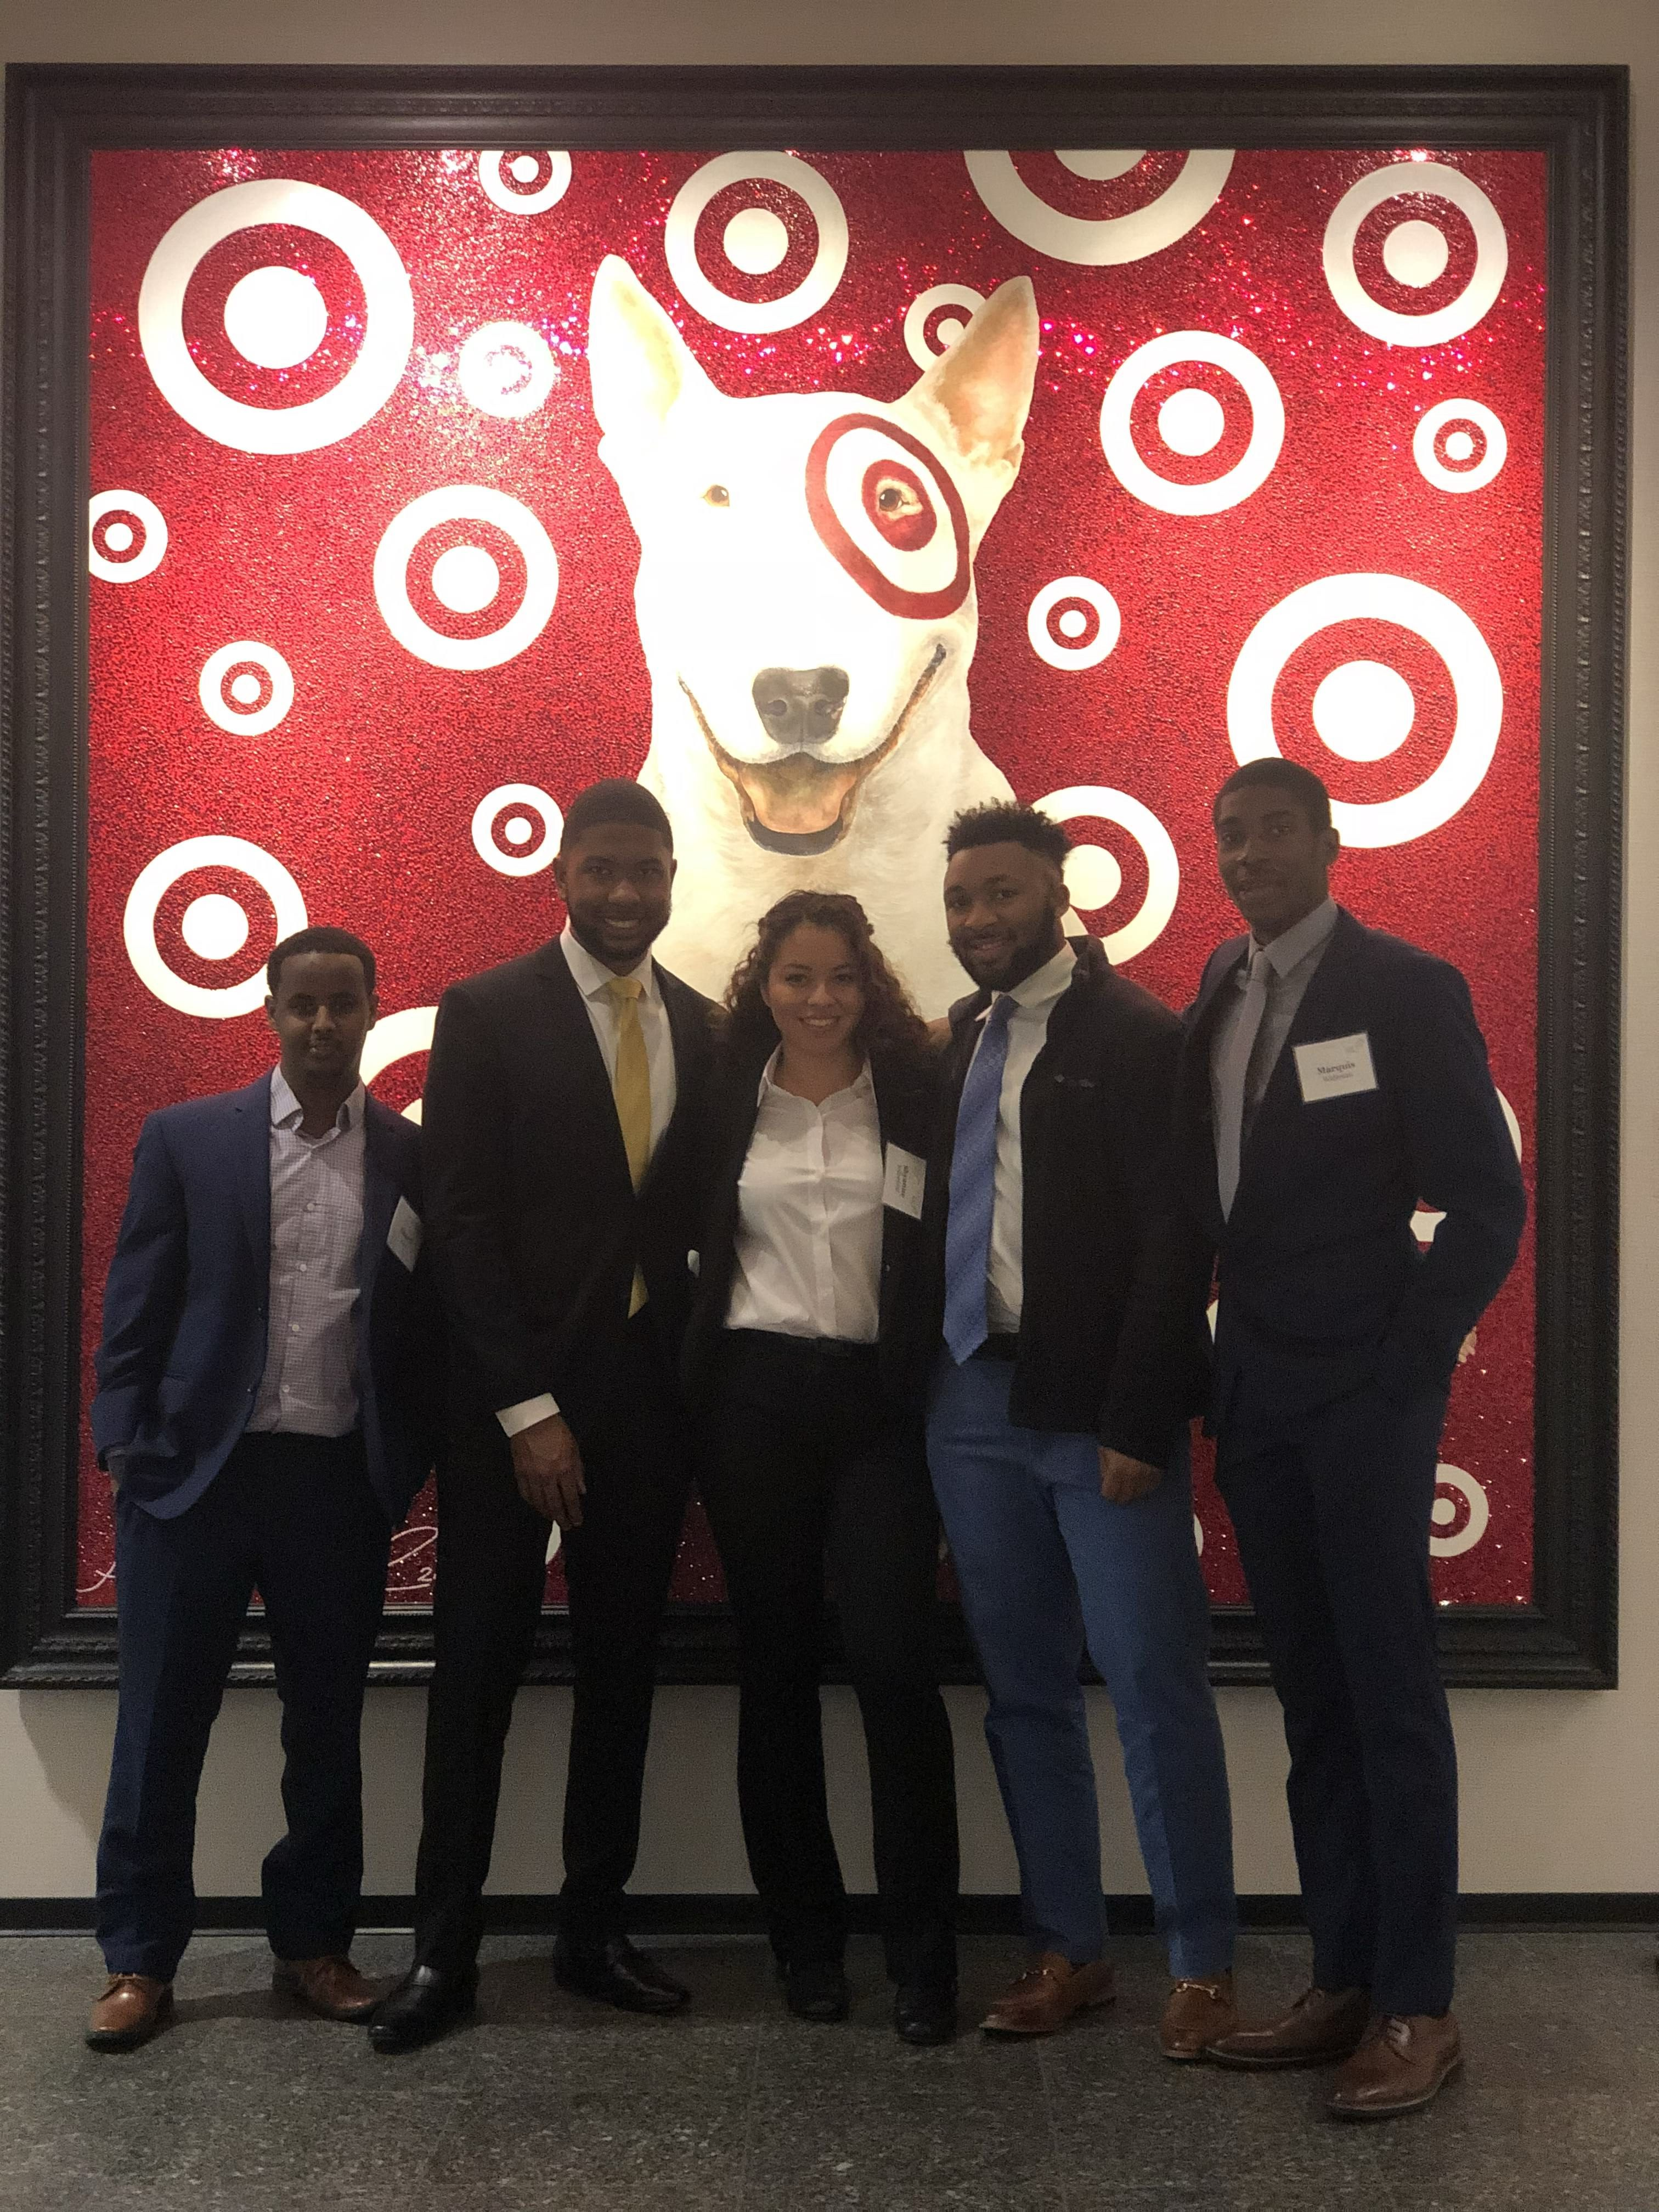 Shyanne Yellowbird poses with Career Prep peers and a portrait of Bullseye, the Target mascot, at MLT's Interview and Analytical Skills seminar at Target.